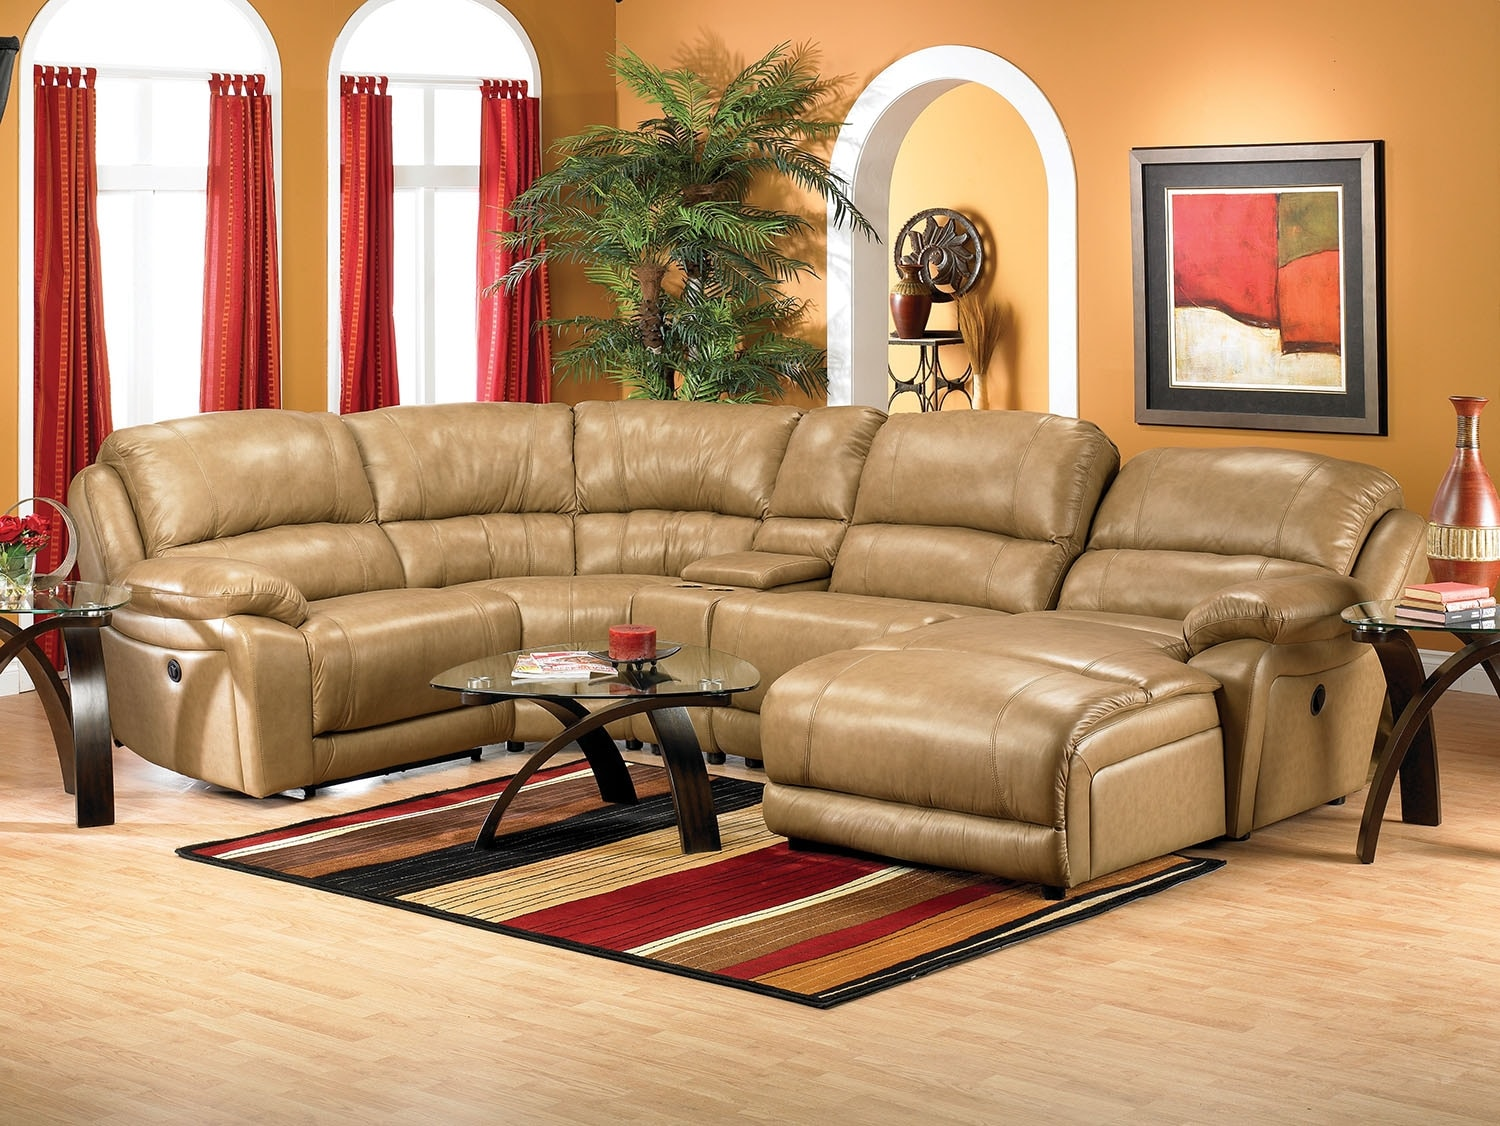 the brick cindy crawford reclining sofa cheap sofas south africa marco genuine leather 5 piece sectional with right facing